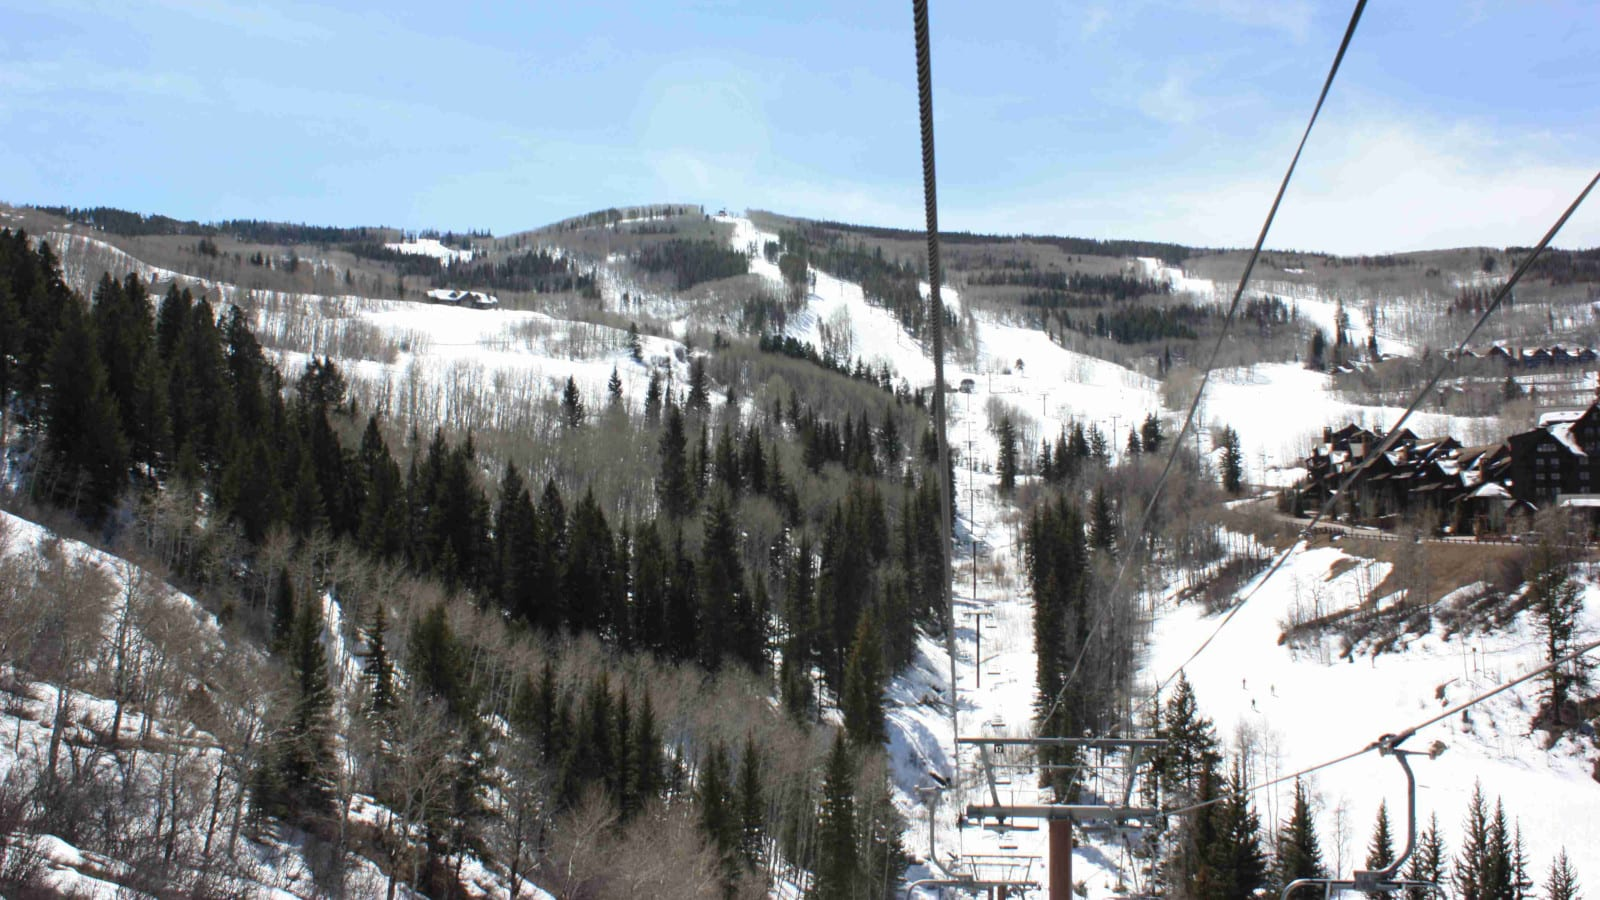 Beaver Creek Ski Resort Arrowhead Mountain Chairlift